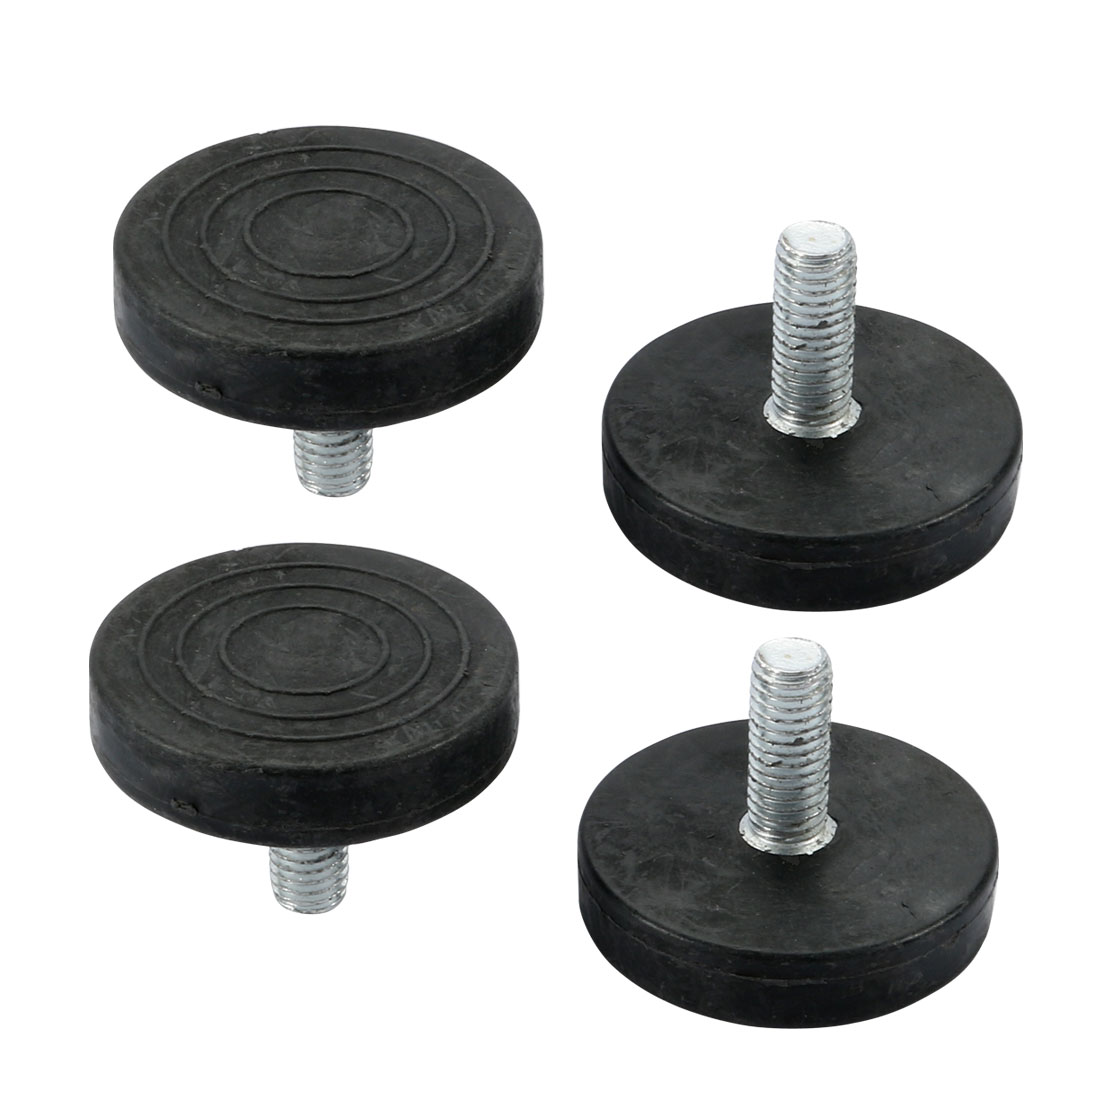 4pcs Screw On Type Furniture Glide M8 Thread Leveling Foot Adjuster M8X45X20mm